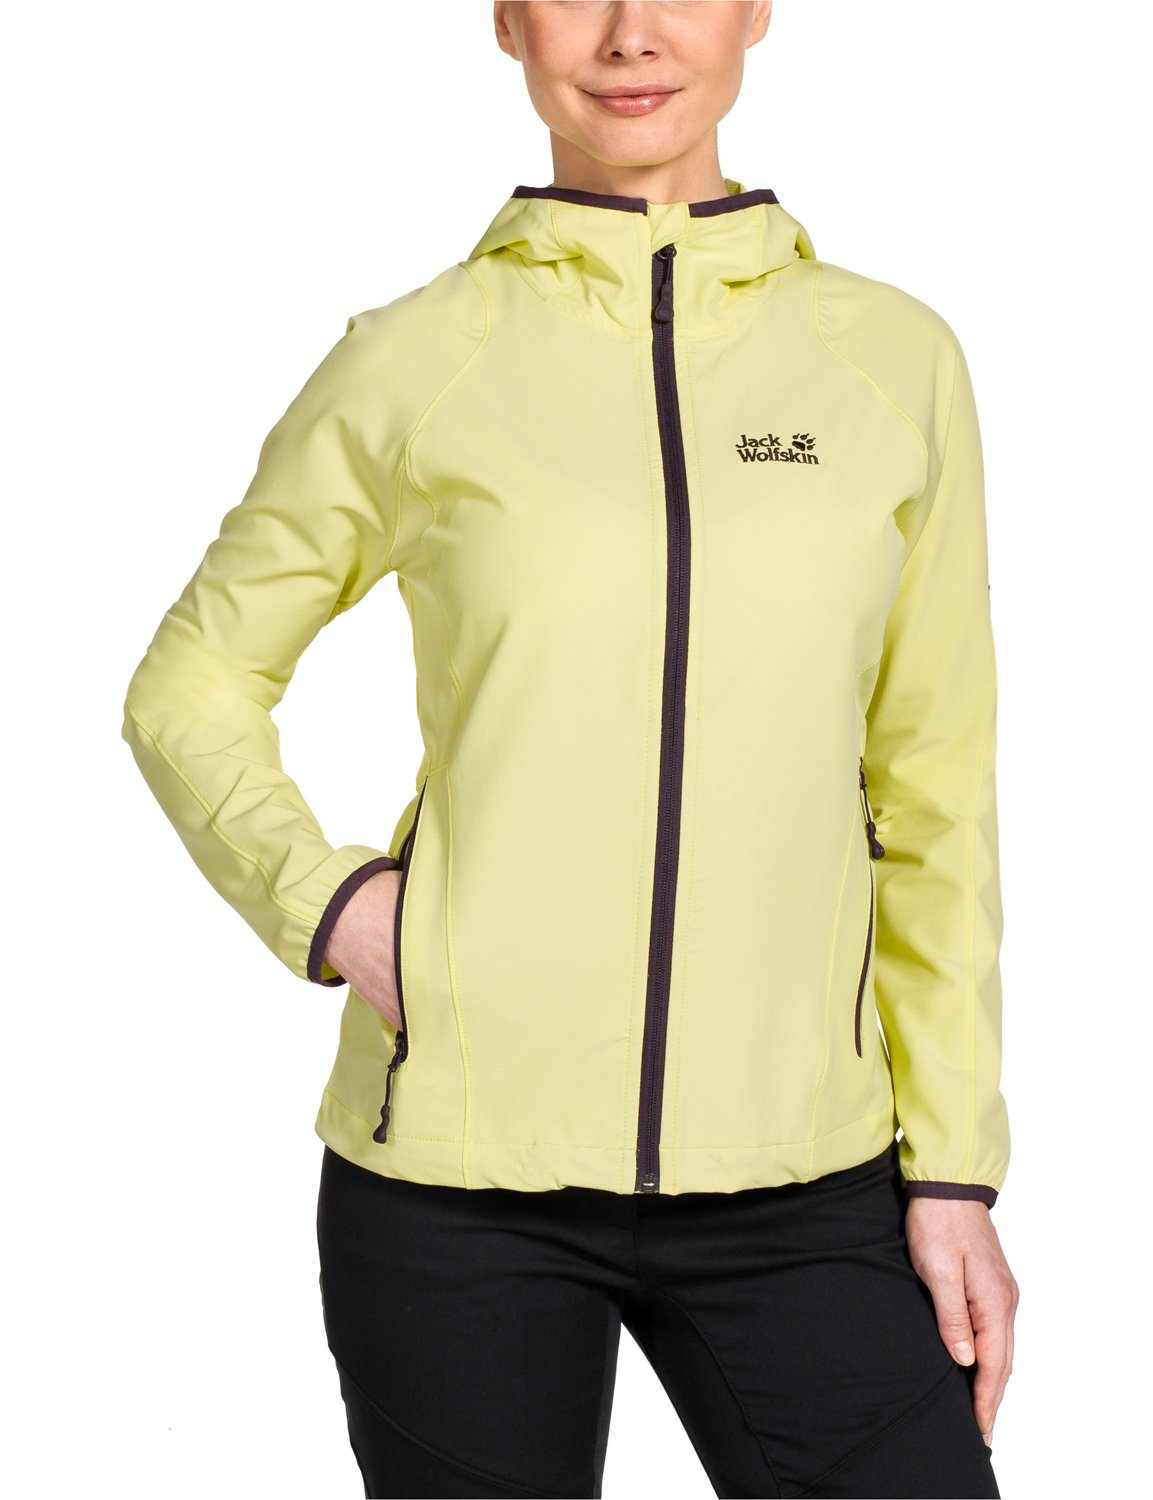 Jack Wolfskin Damen Softshelljacke Turbulence Jacket Women